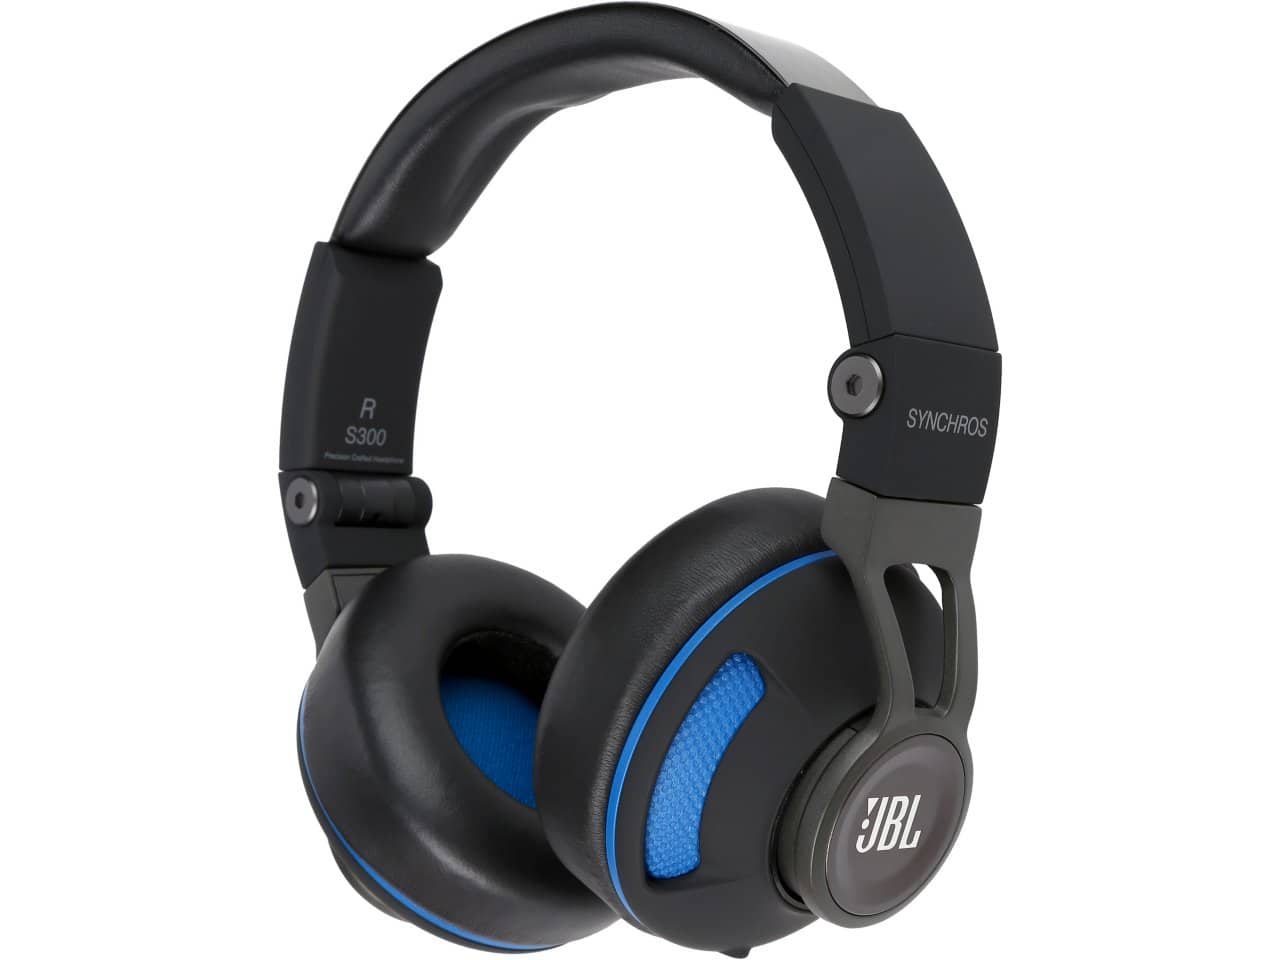 JBL Synchros S300 On-Ear Black & Blue Headphones with Built-In iOS/Android Remote + Microphone for $29.99 AR + Free Shipping @ Newegg.com